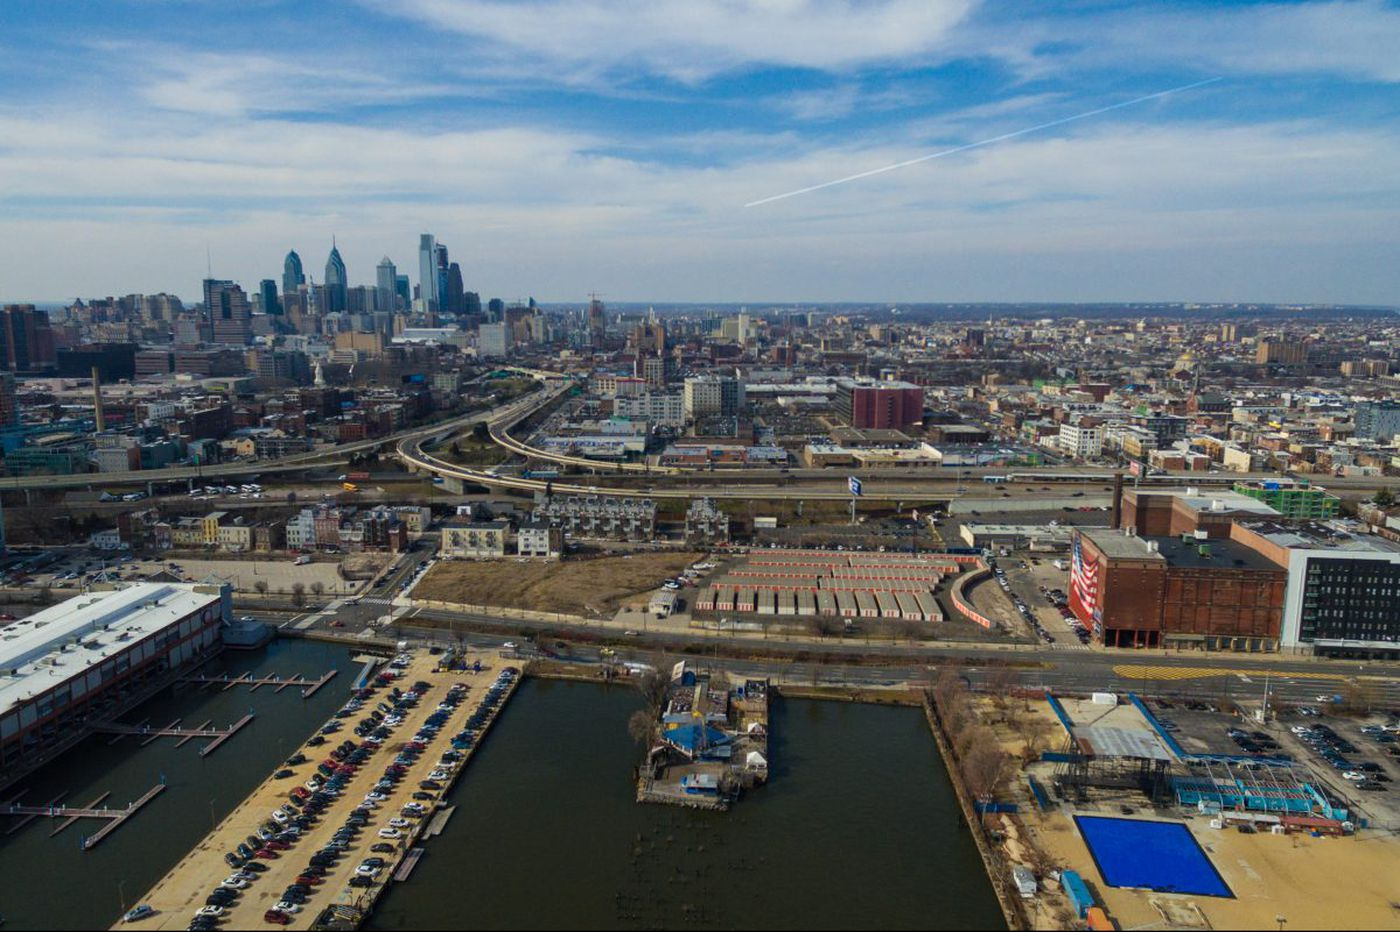 Cavanaugh's on Delaware River has new landlord, as pier changes hands